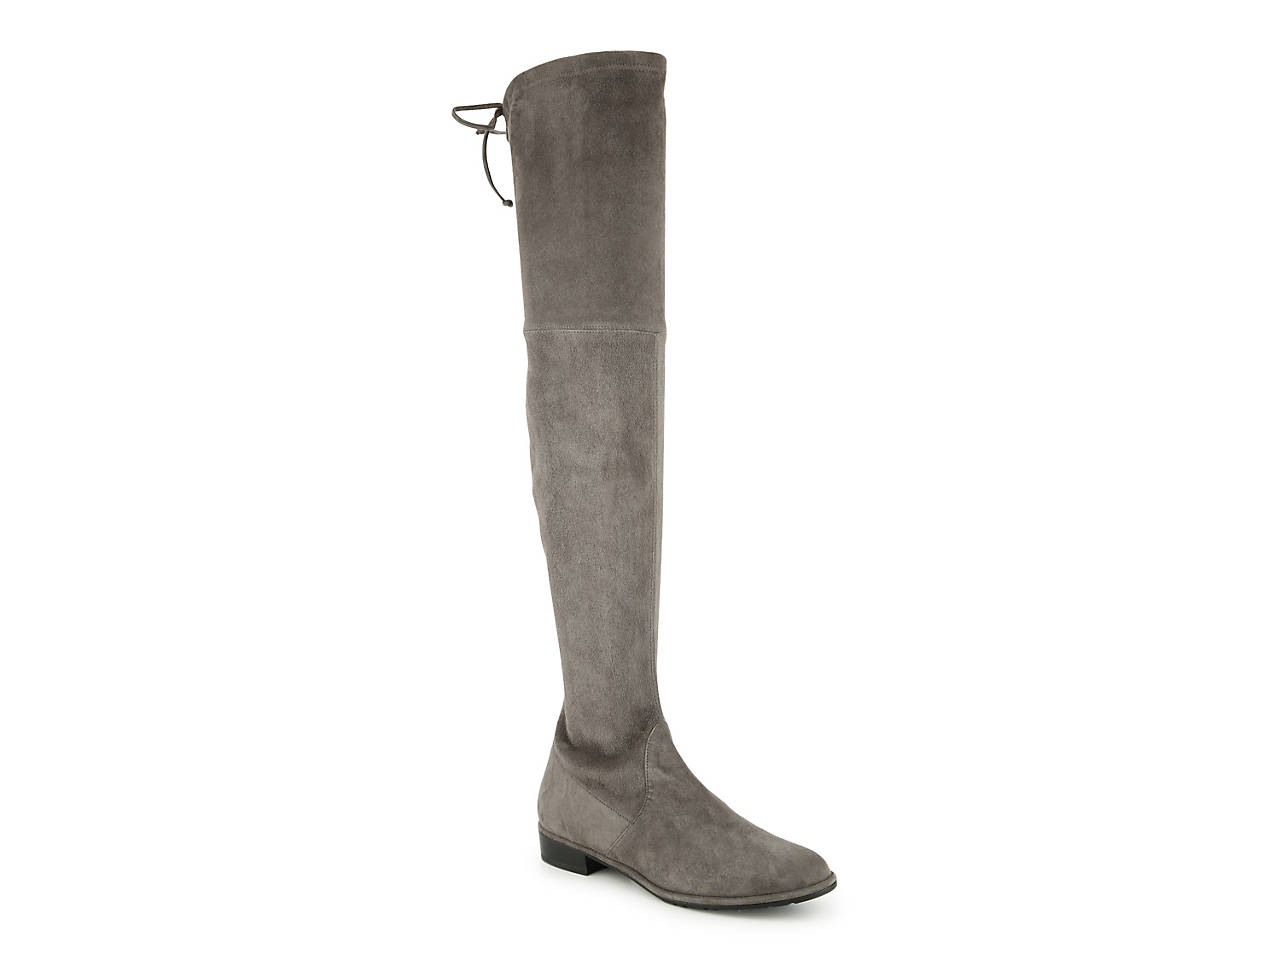 Lowland Thigh High Boot